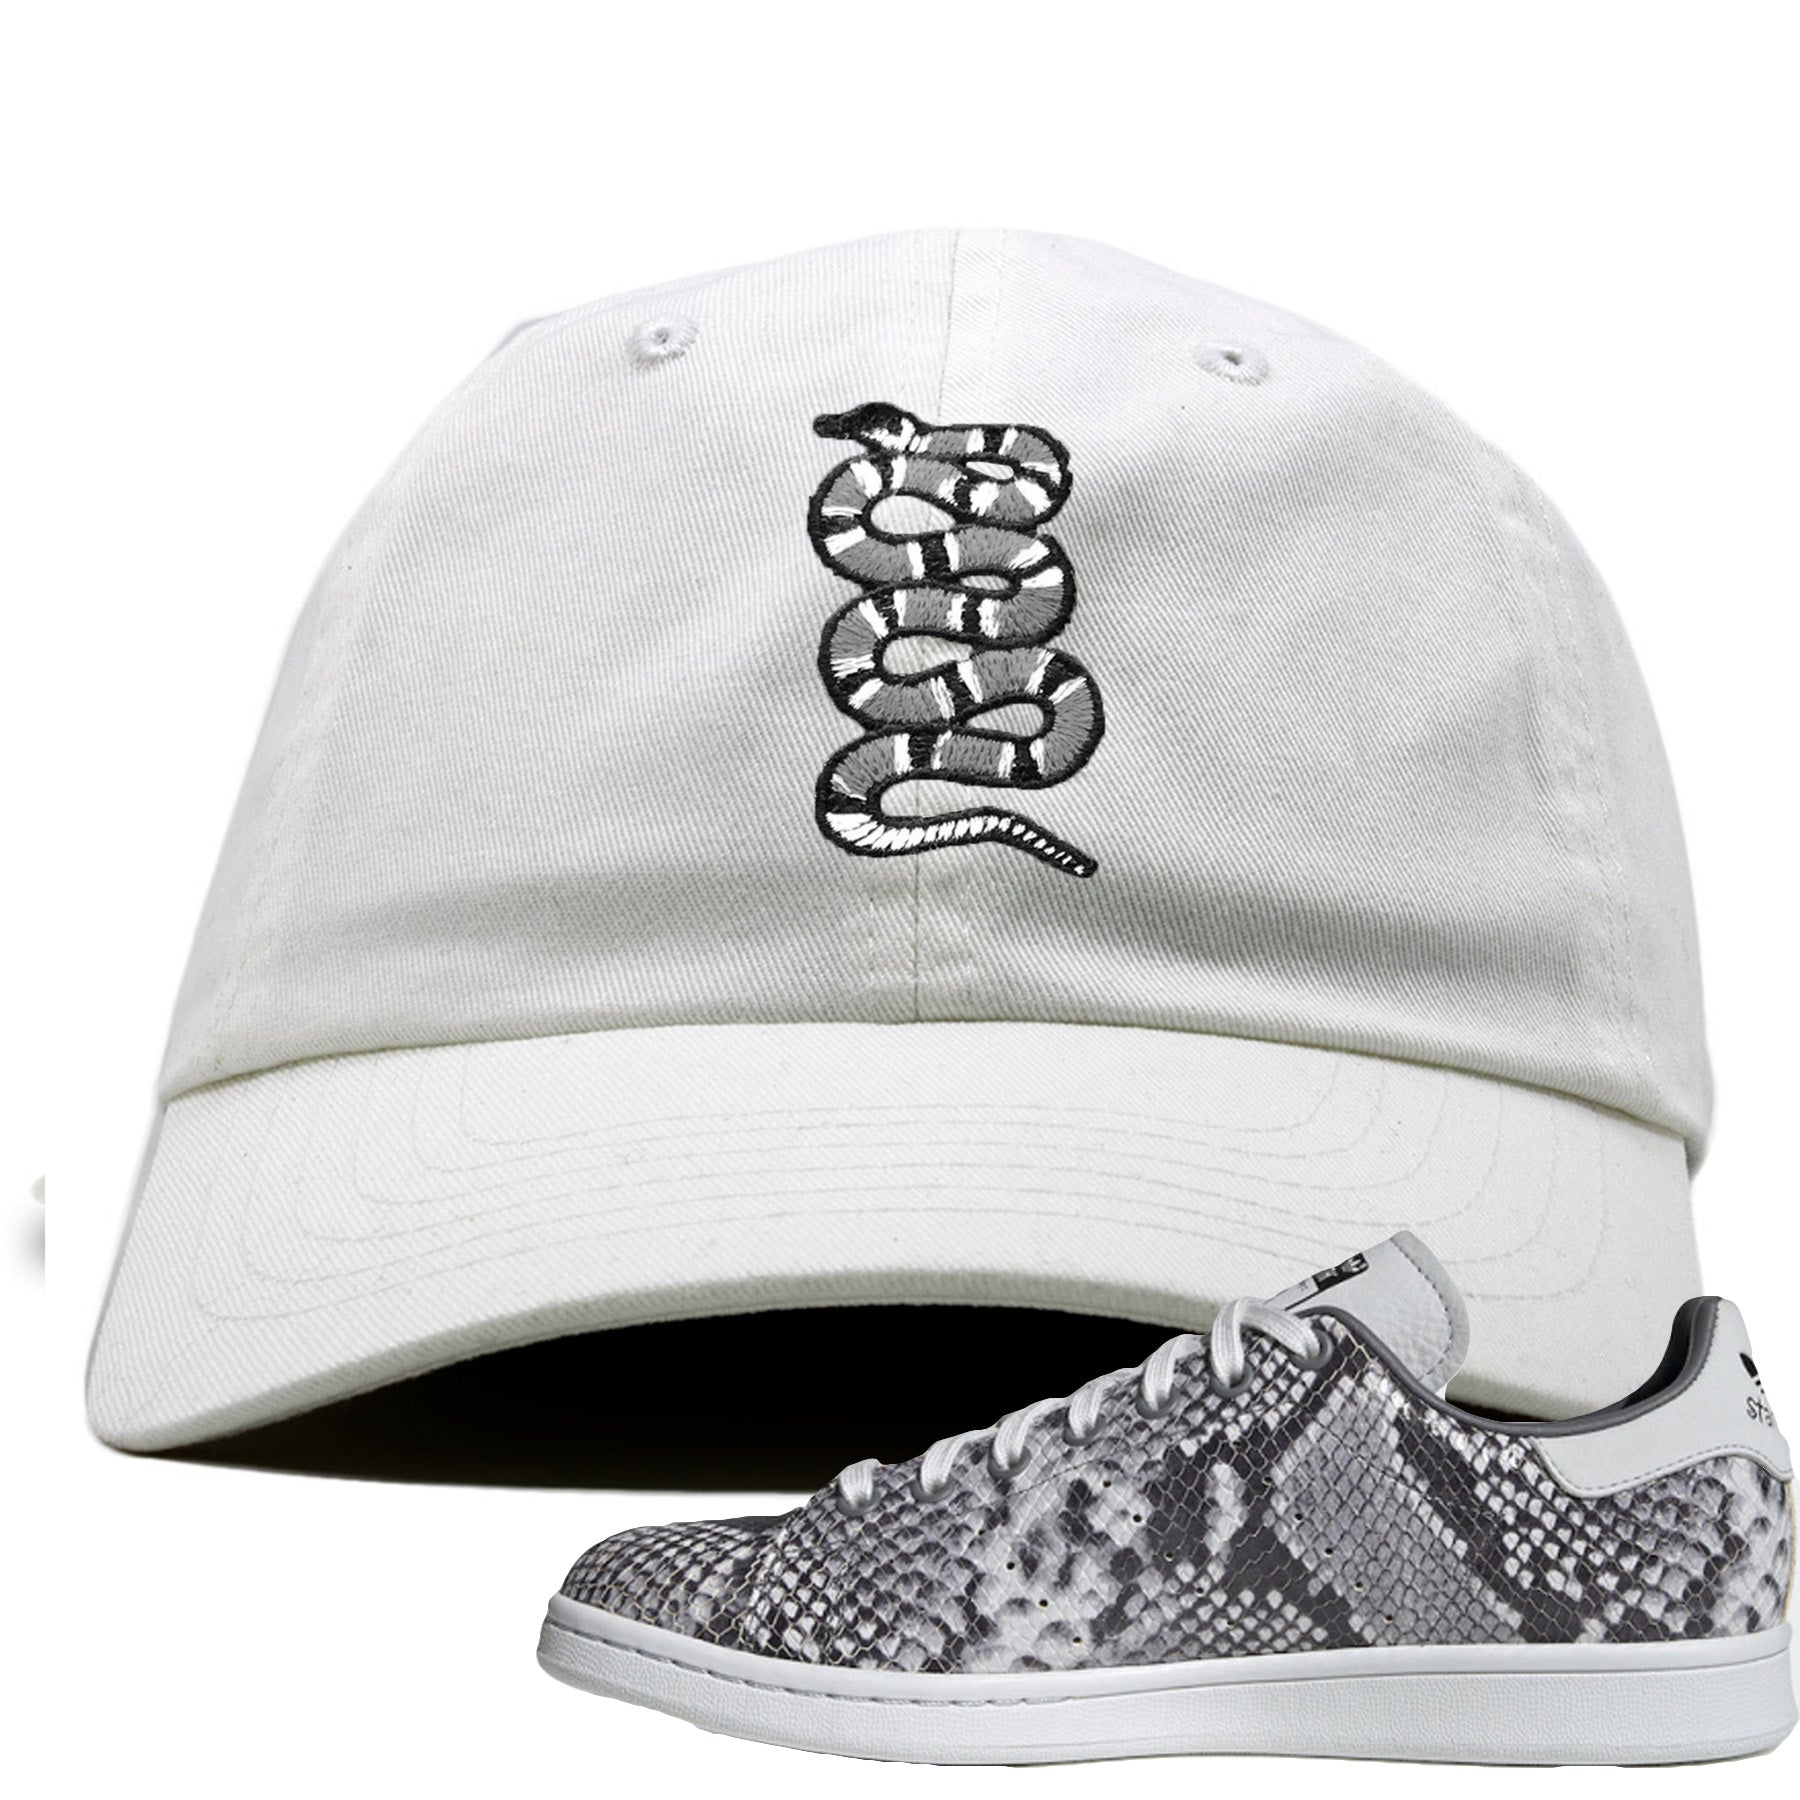 meilleures baskets couleur rapide lisse Adidas Stan Smith Grey Snakeskin Sneaker Match Coiled Snake White Dad Hat